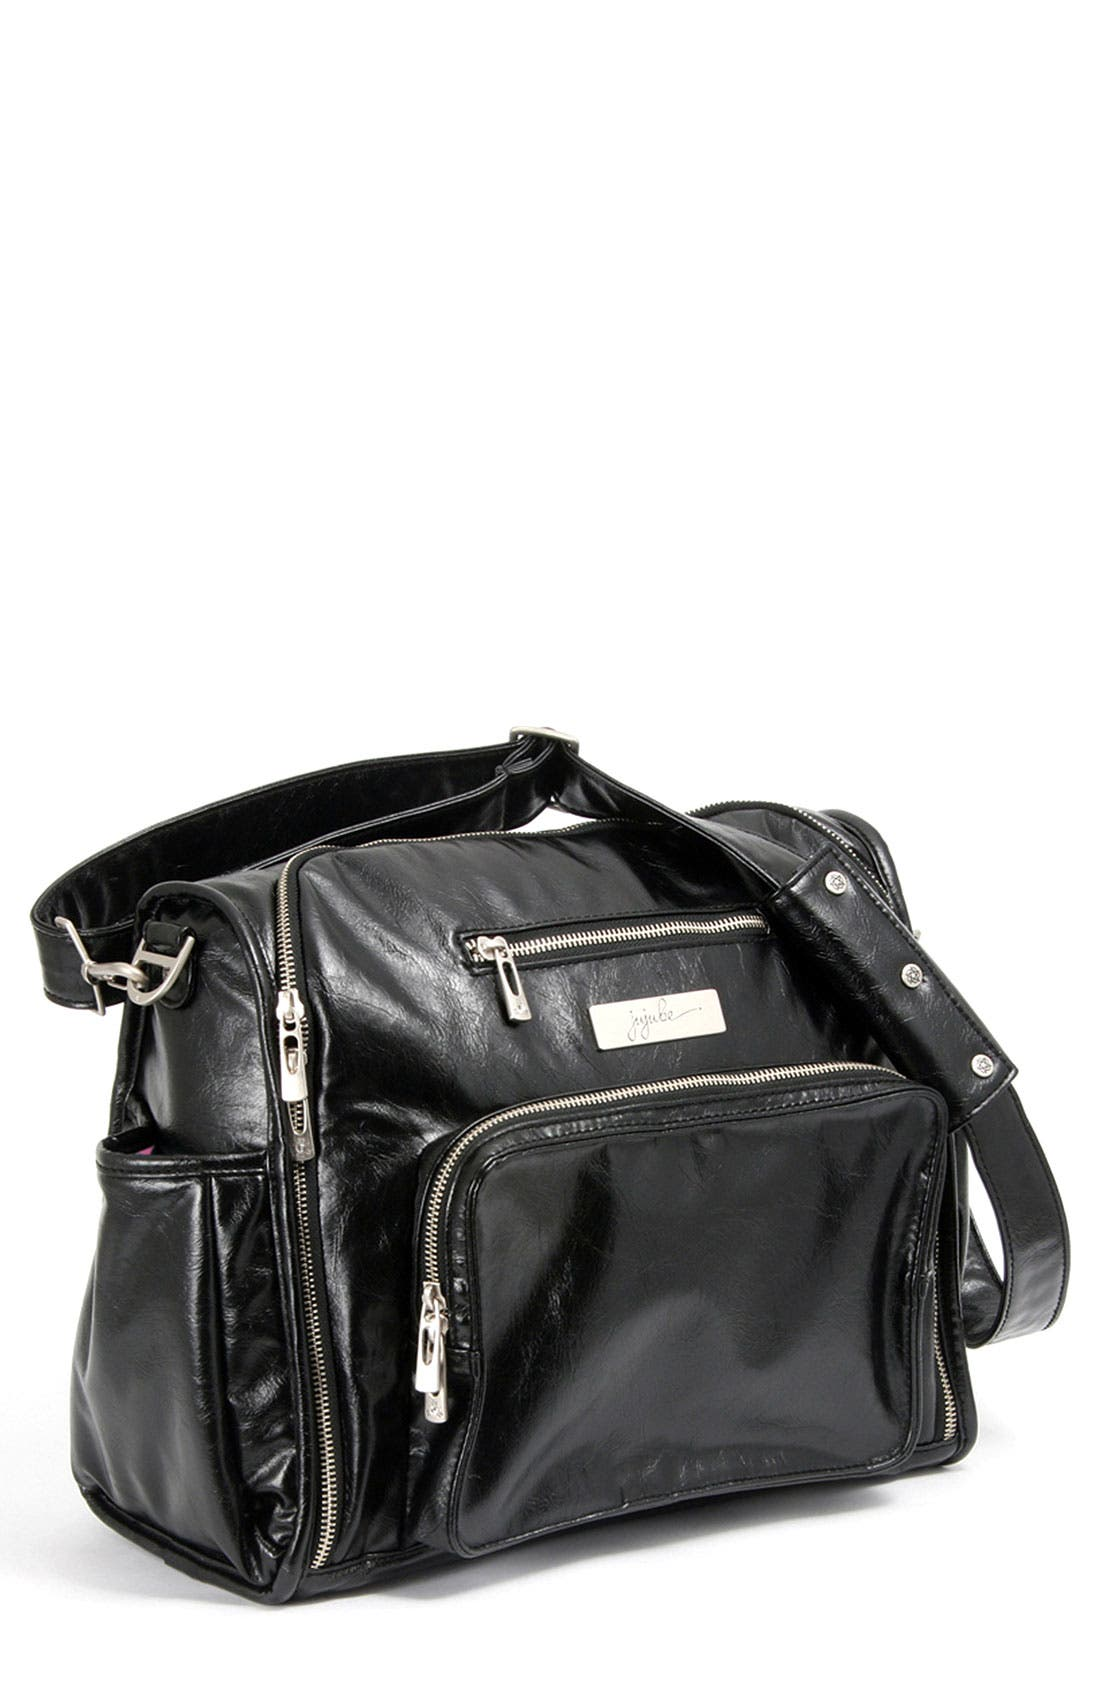 Alternate Image 1 Selected - Ju-Ju-Be 'Be Fabulous' Earth Leather™ Faux Leather Diaper Bag